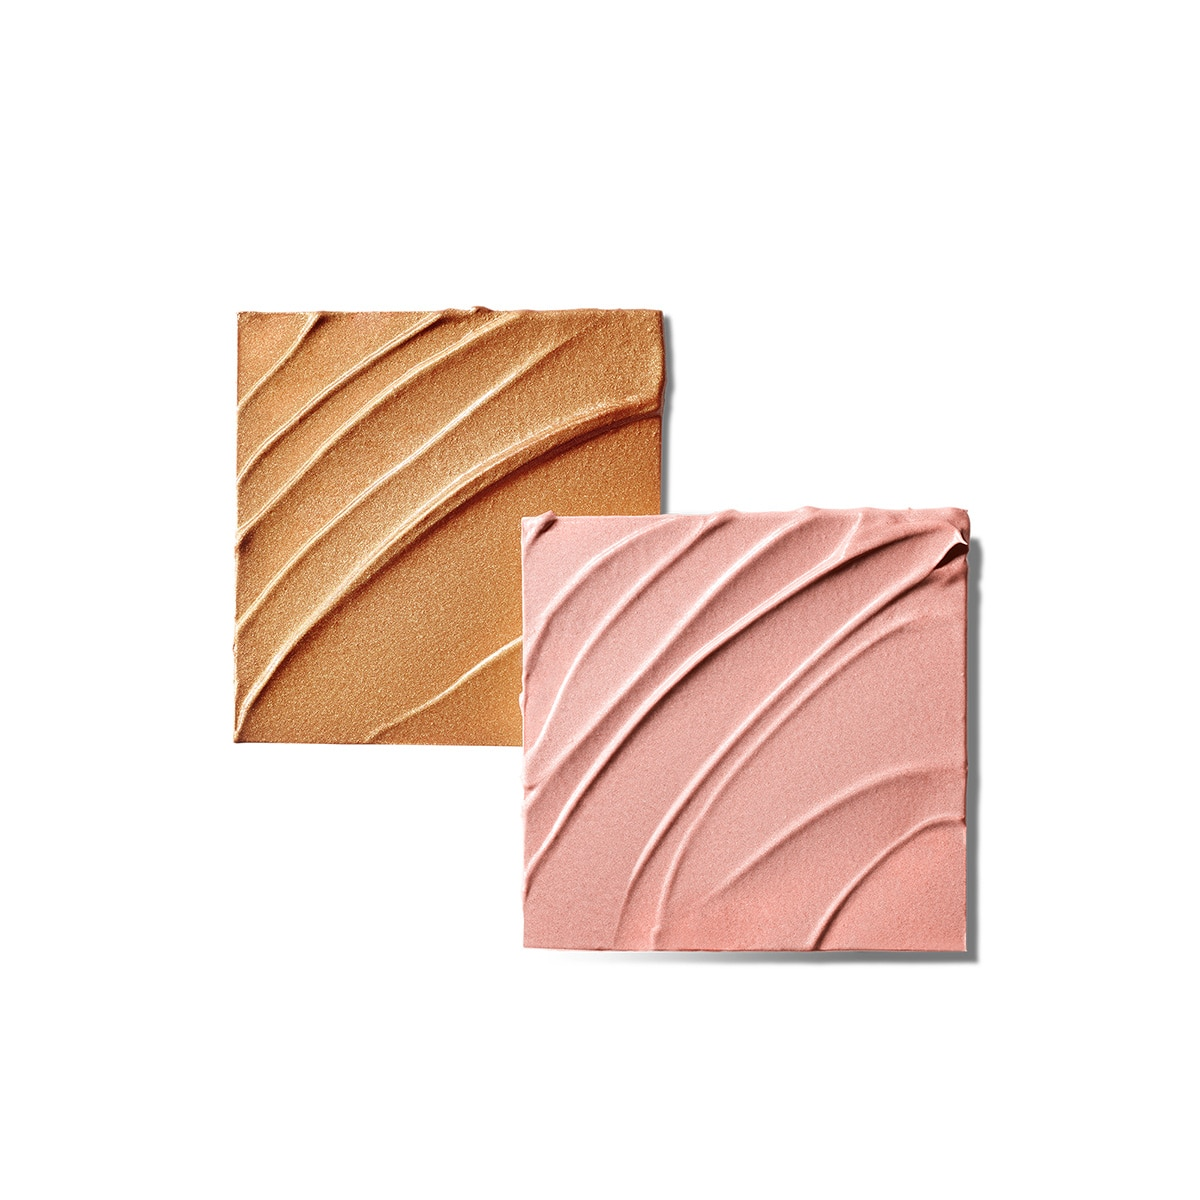 MADISON BEER SHIMMER HIGHLIGHTER  (ILUMINADOR)